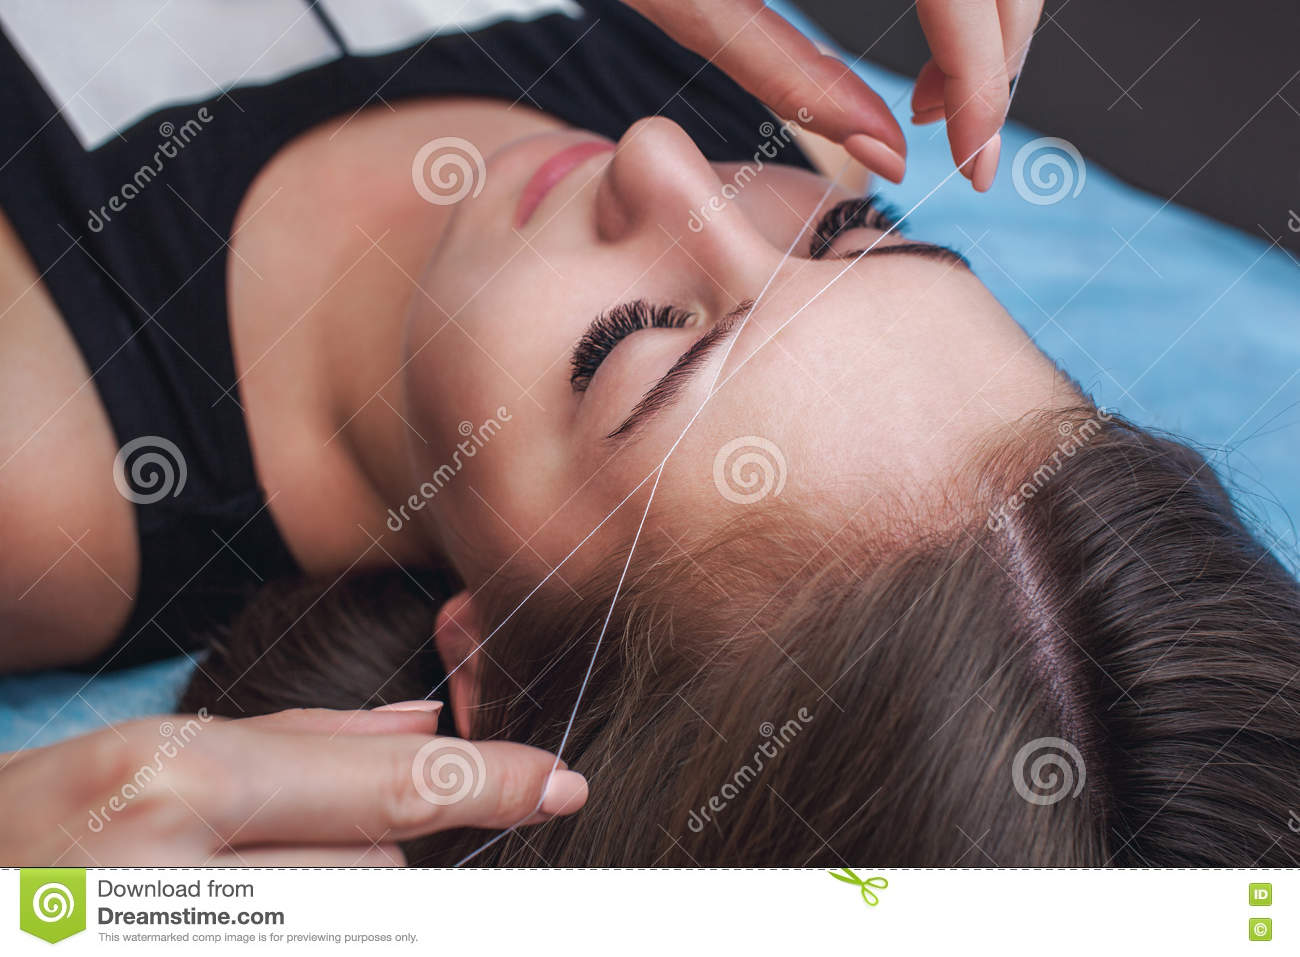 Master corrects makeup, gives shape and thread plucks eyebrows in a beauty salon.